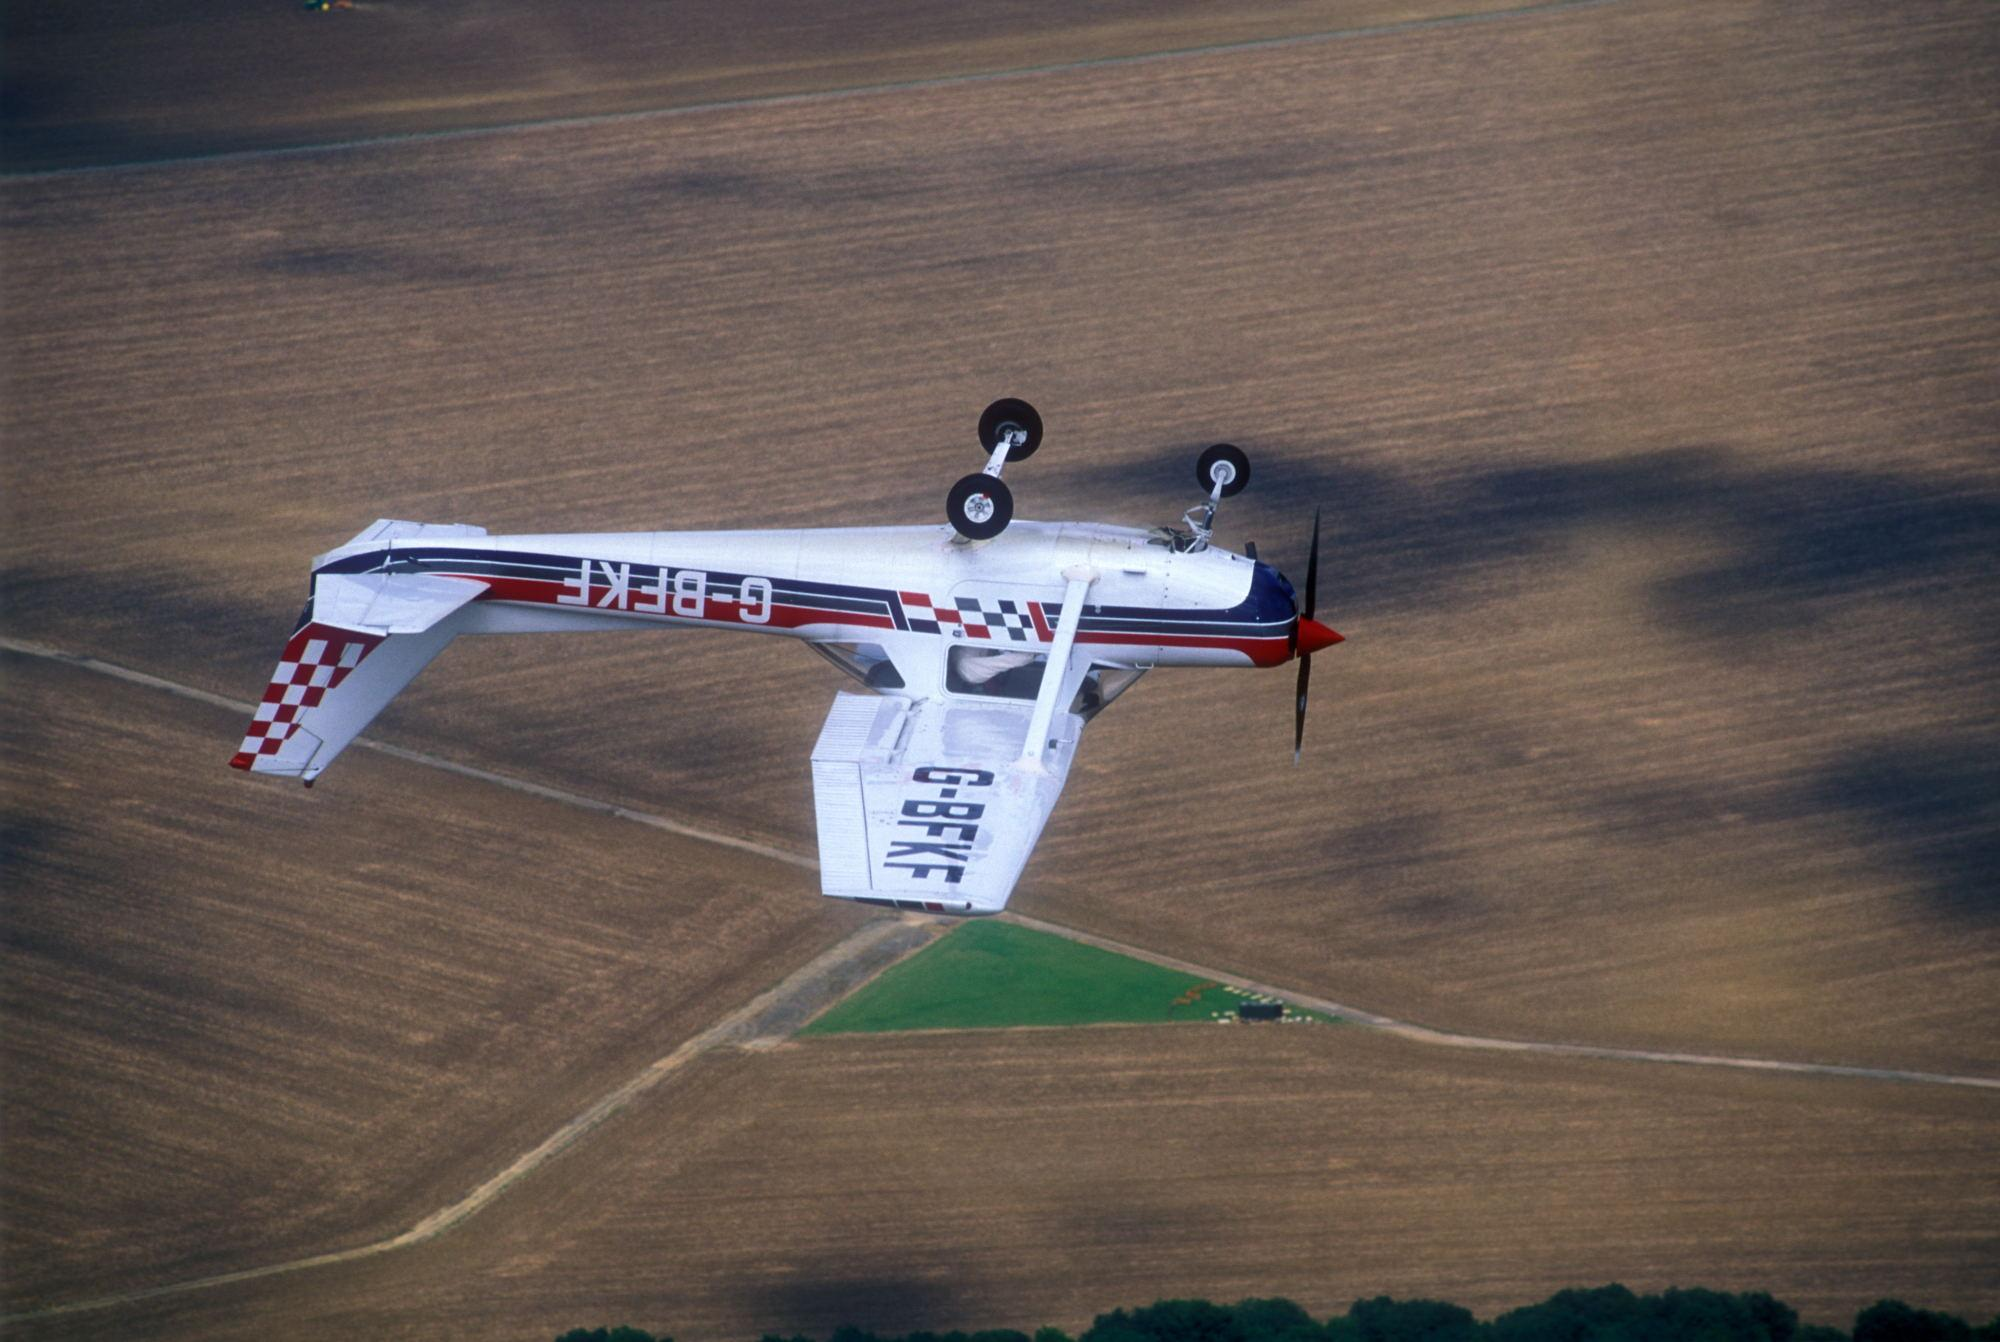 Aerobat A2A Inverted 38